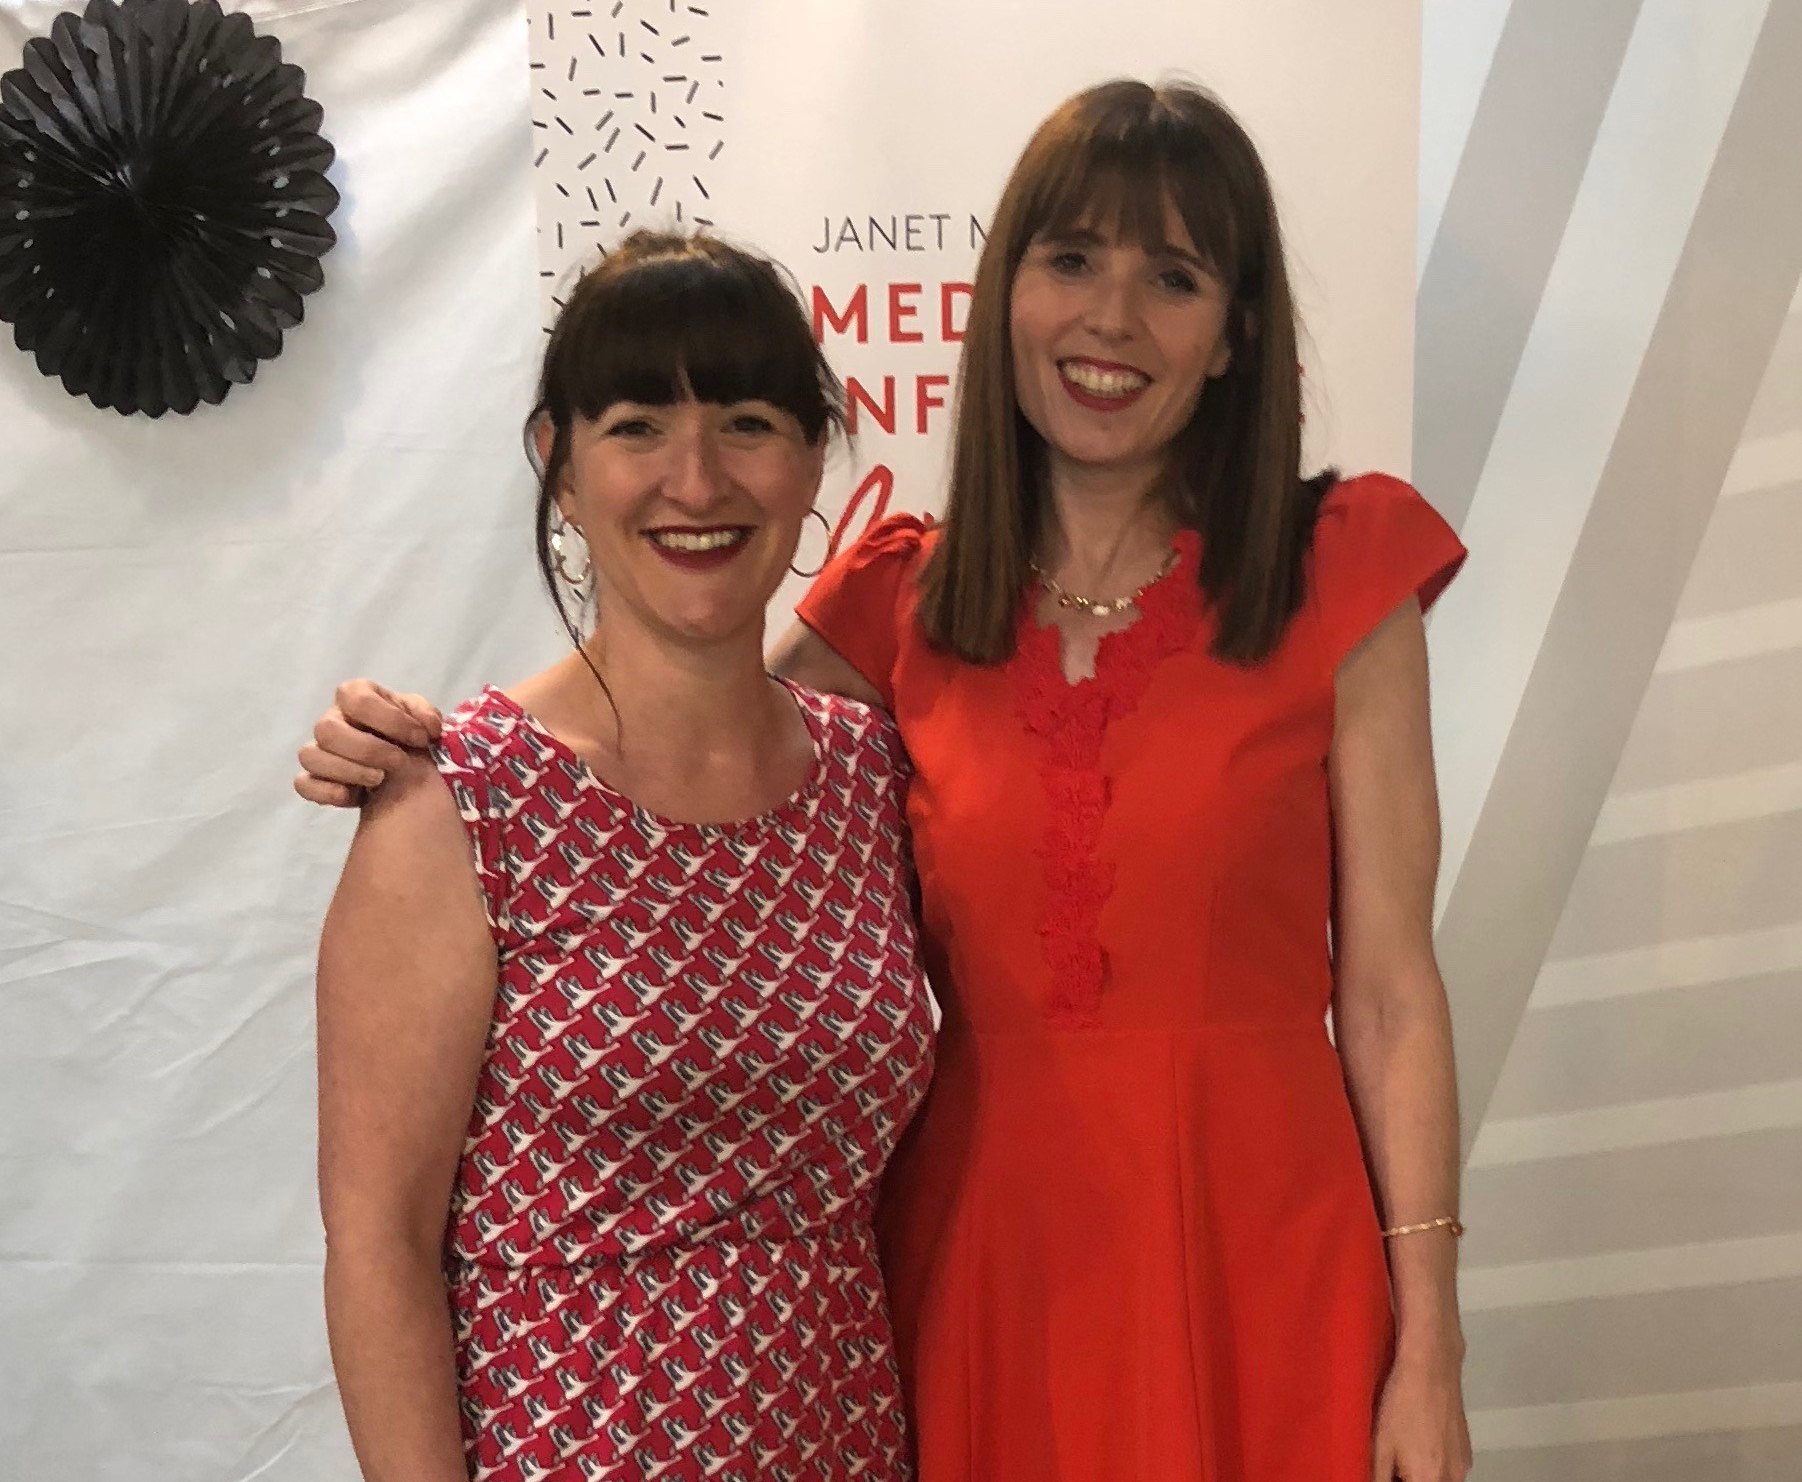 Janine Coombes and Janet Murray at Media Influence Live 2018